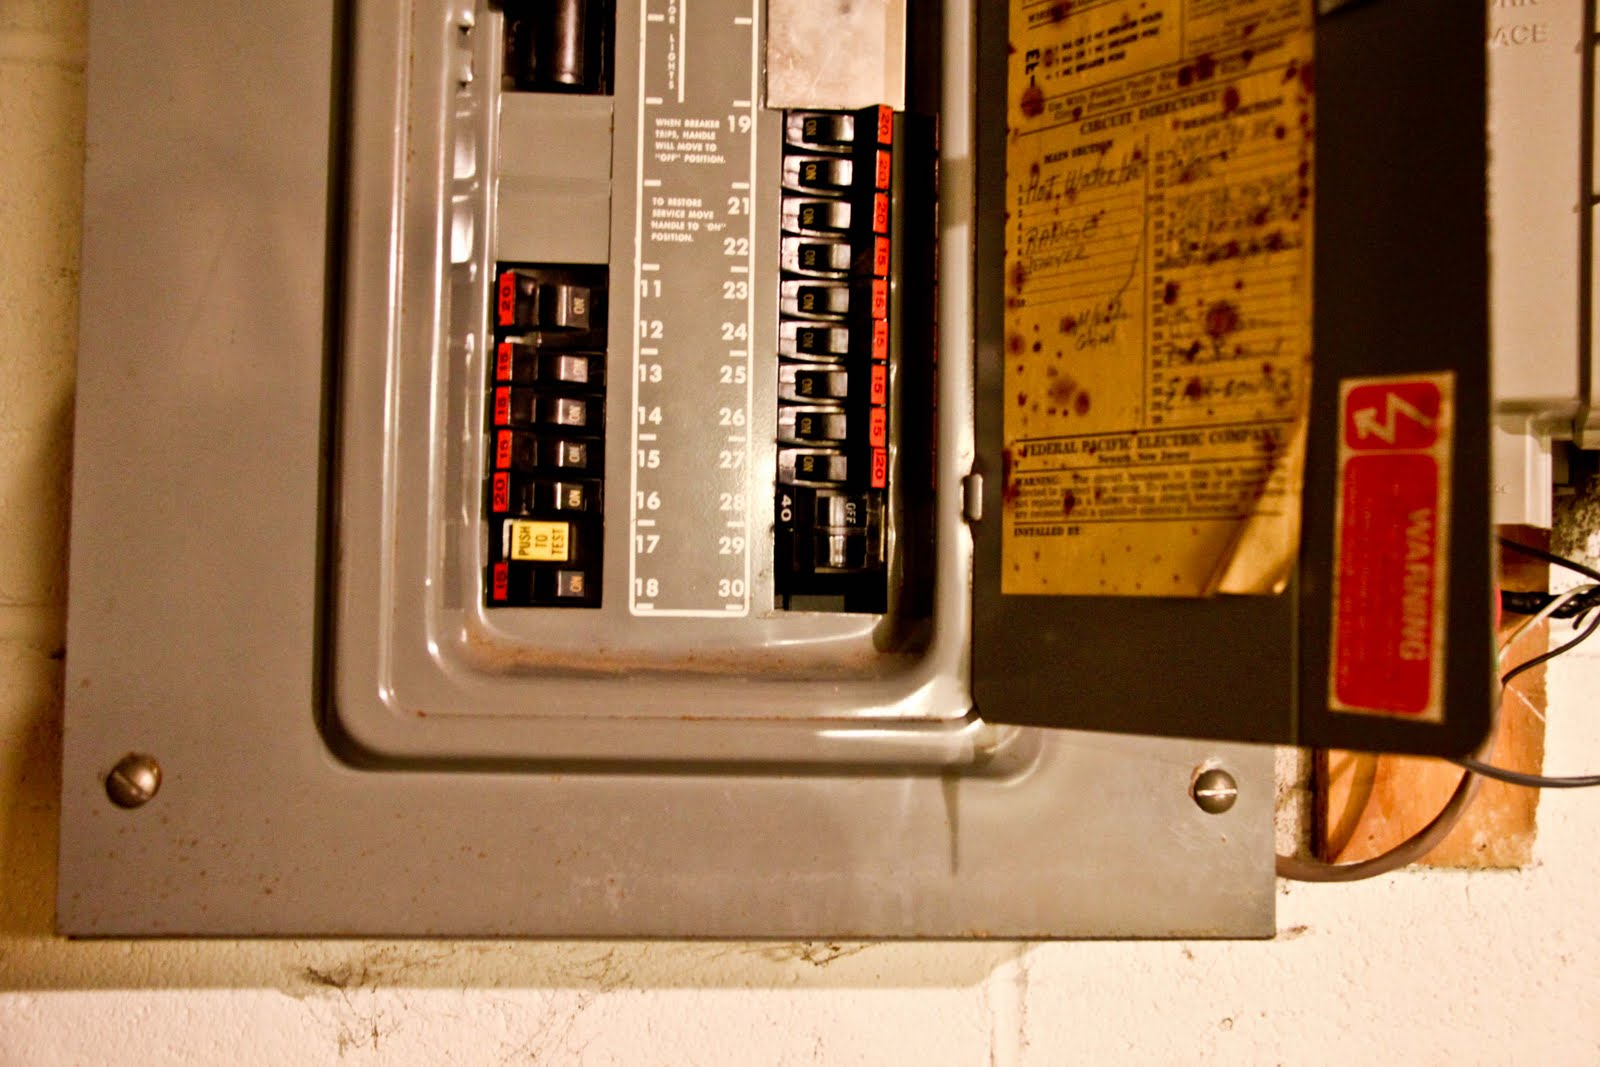 IMG_4614 replacing fuse on central ac unit work space how to box in a fuse box at panicattacktreatment.co